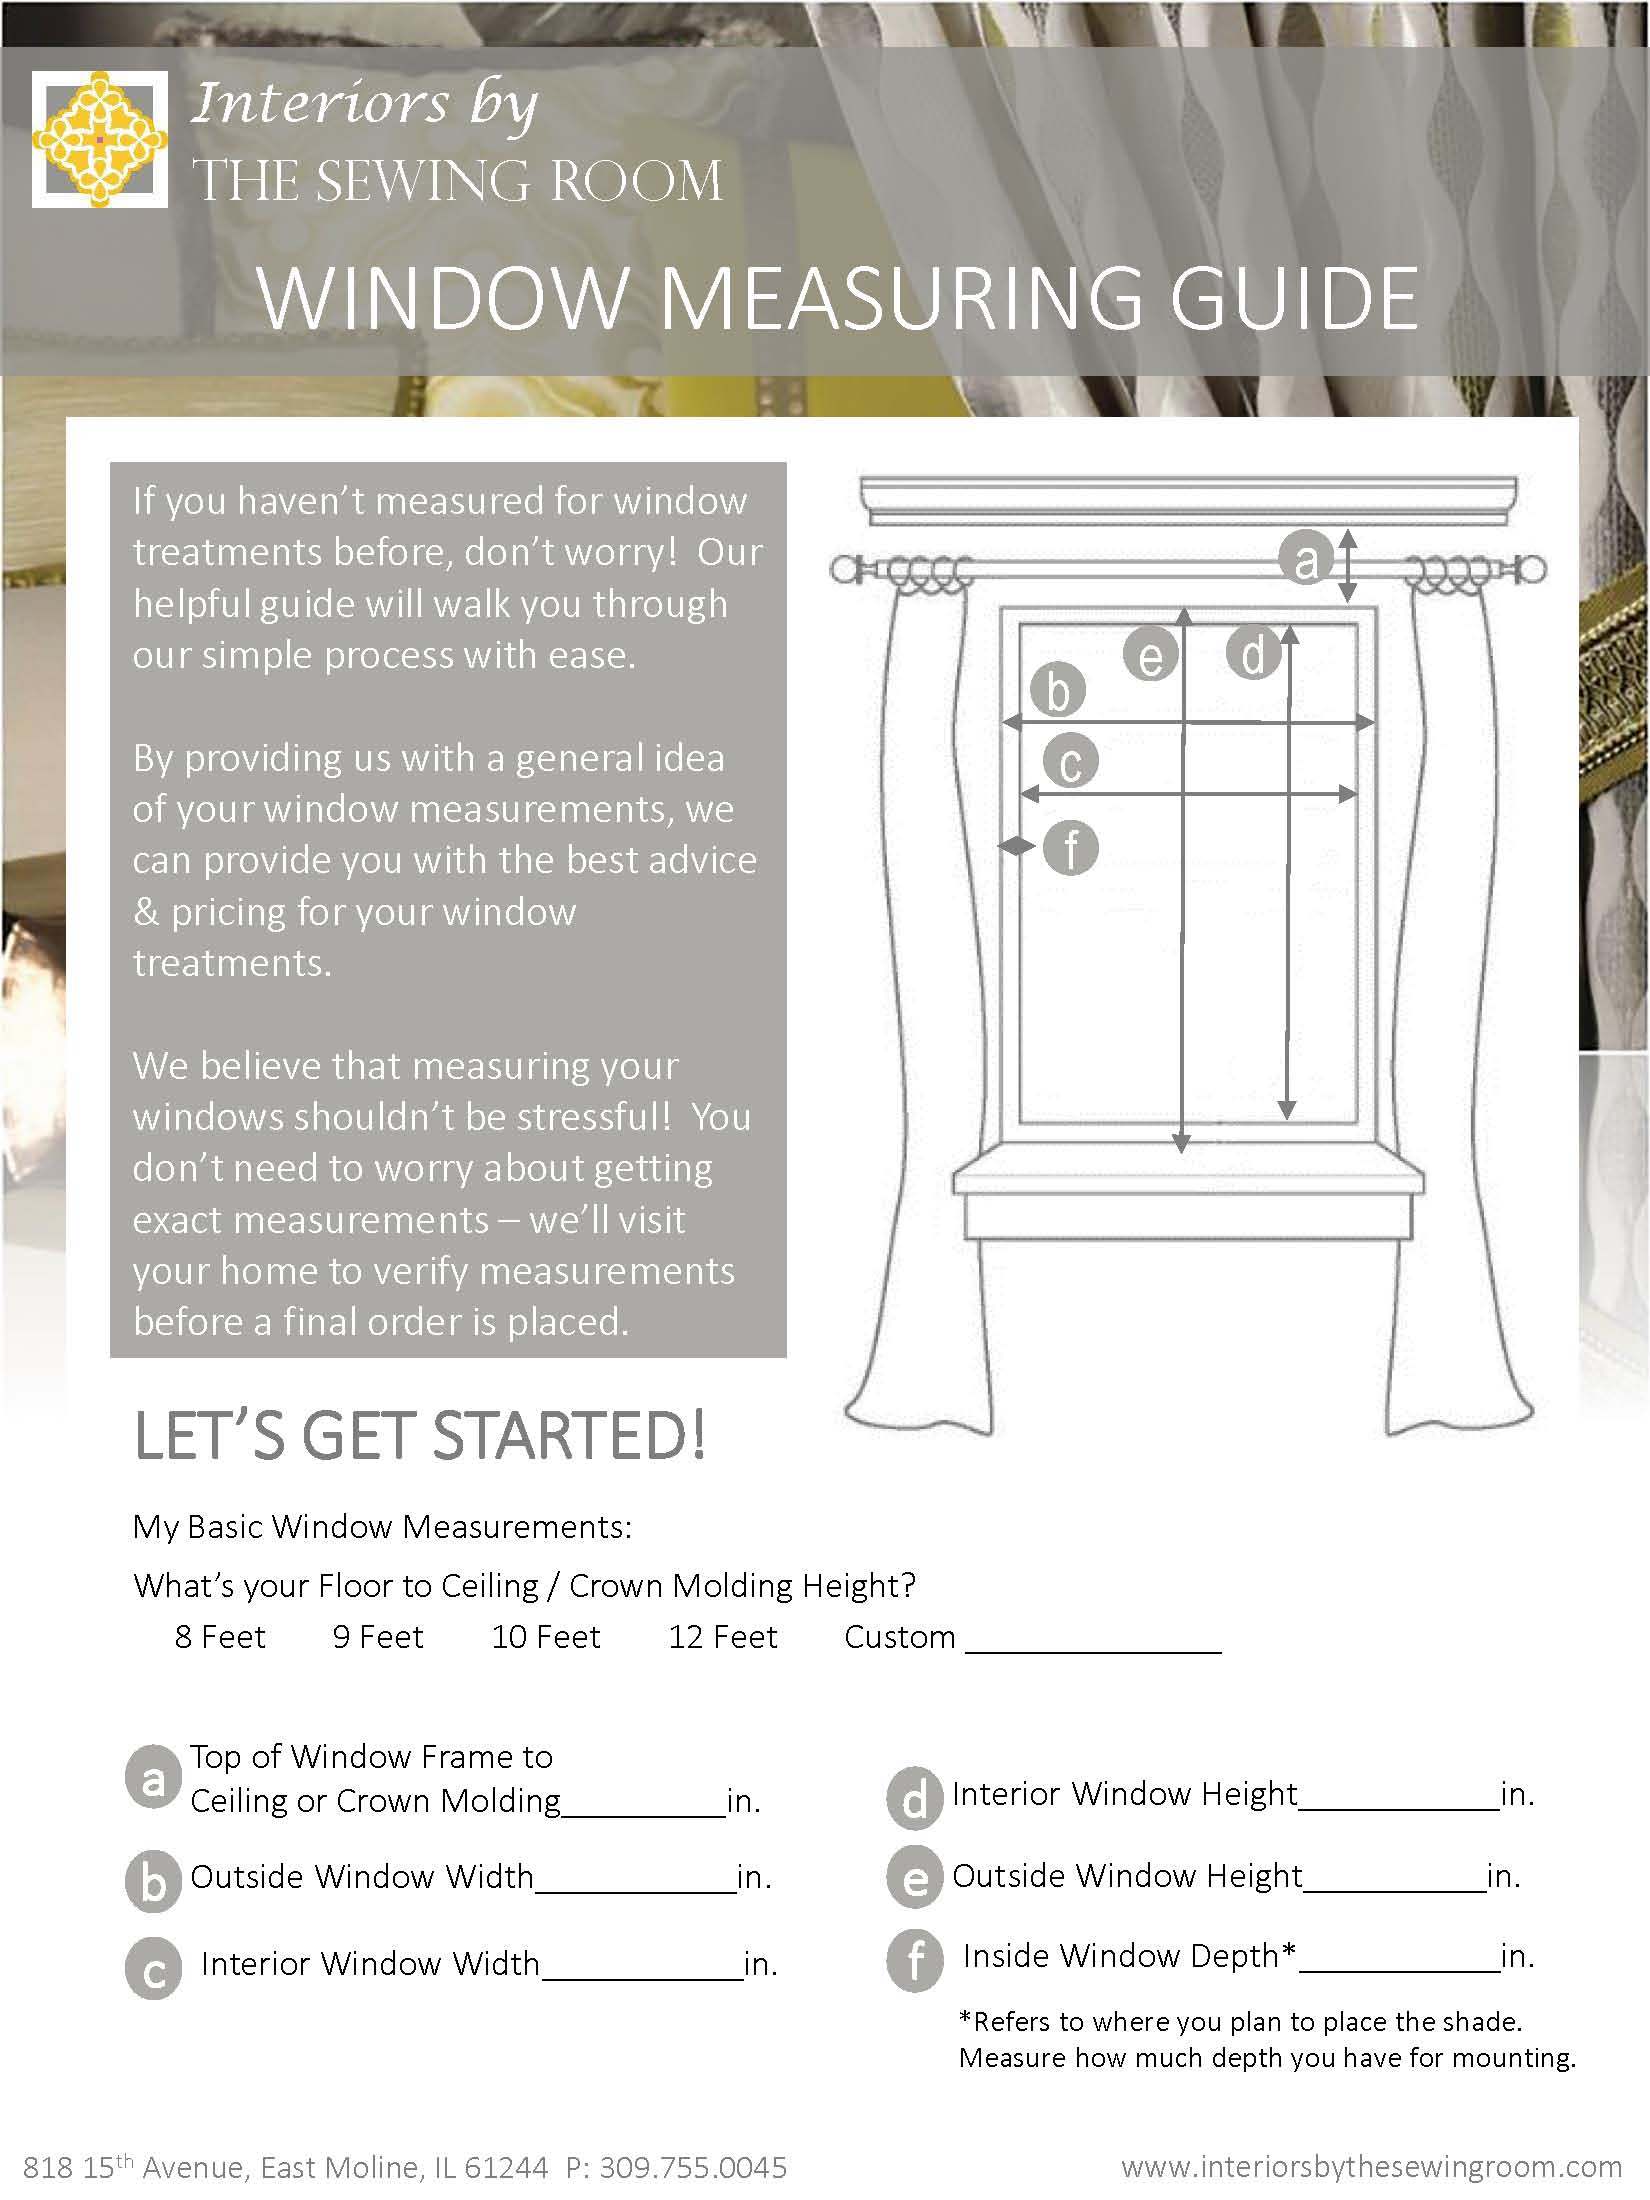 Window Measuring Guide